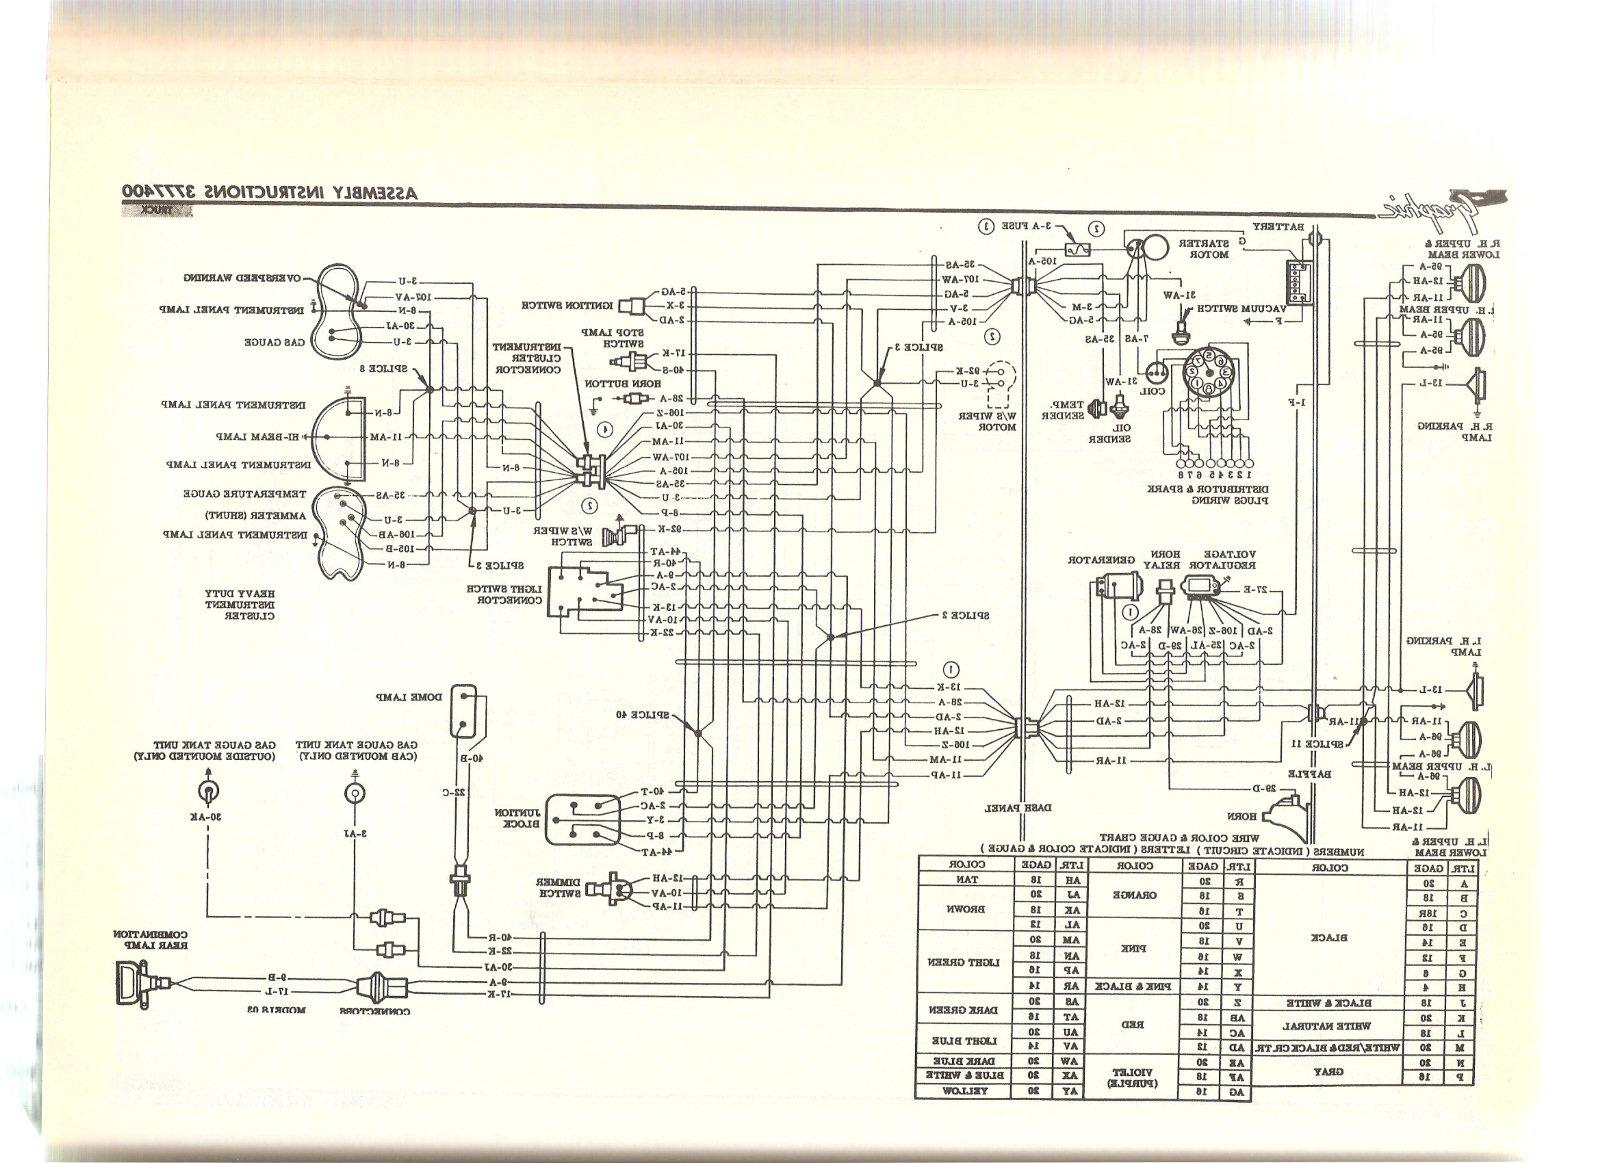 hight resolution of 1959 chrysler wiring diagram wiring diagram tags 1947 chrysler windsor wiring schematic guide about wiring diagram